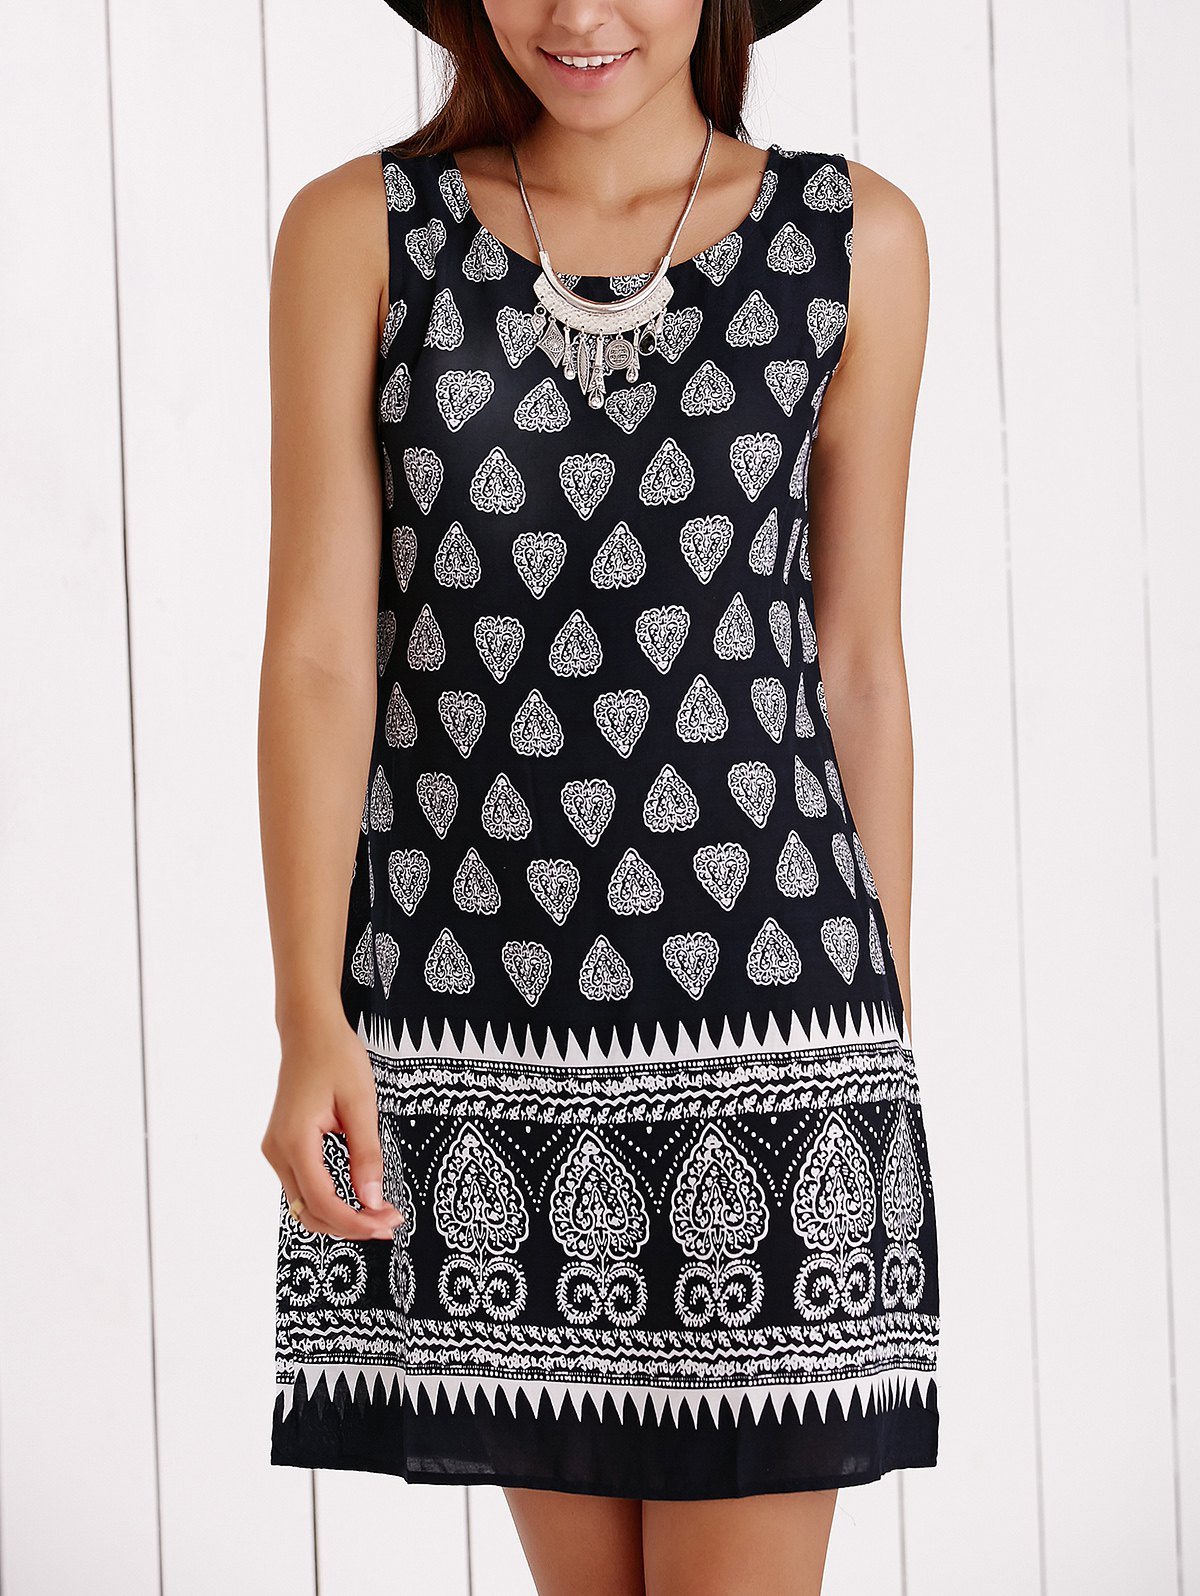 Scoop Neck Tribal Print Shift Dress - BLACK XL